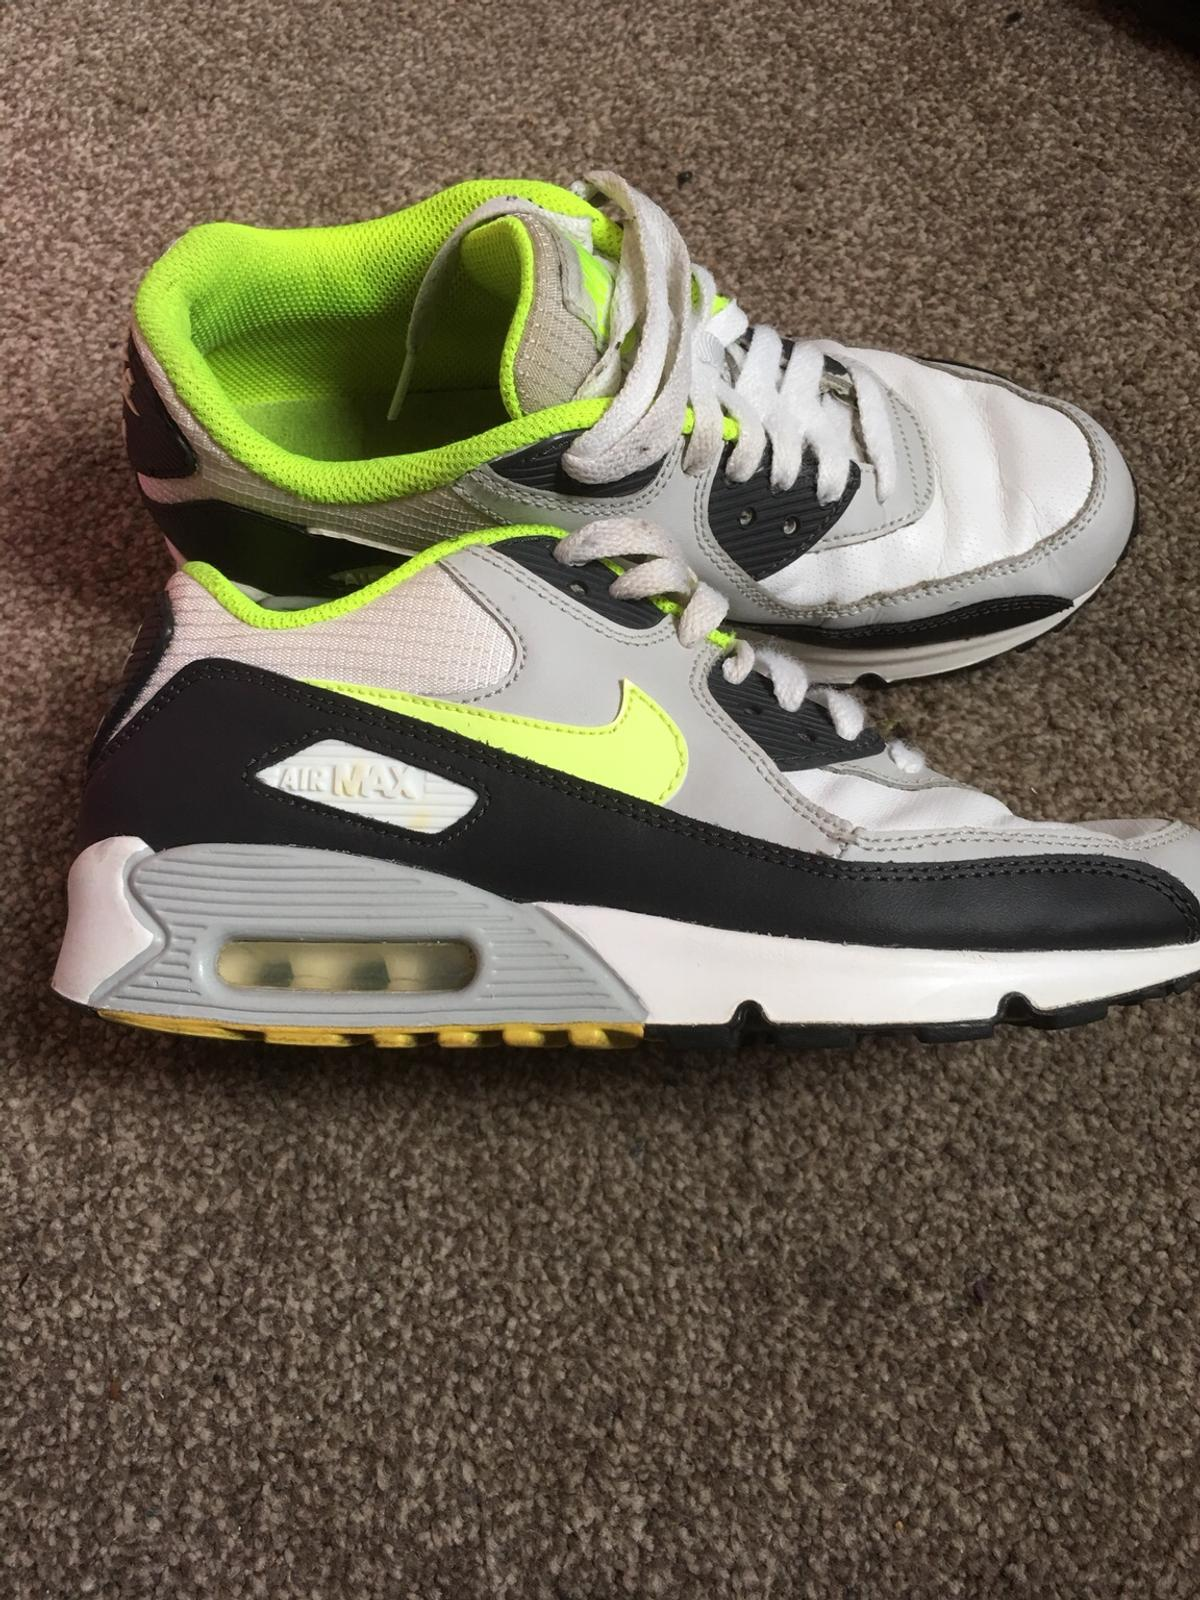 23795976da653 Nike air max trainers in Hedon for £10.00 for sale - Shpock